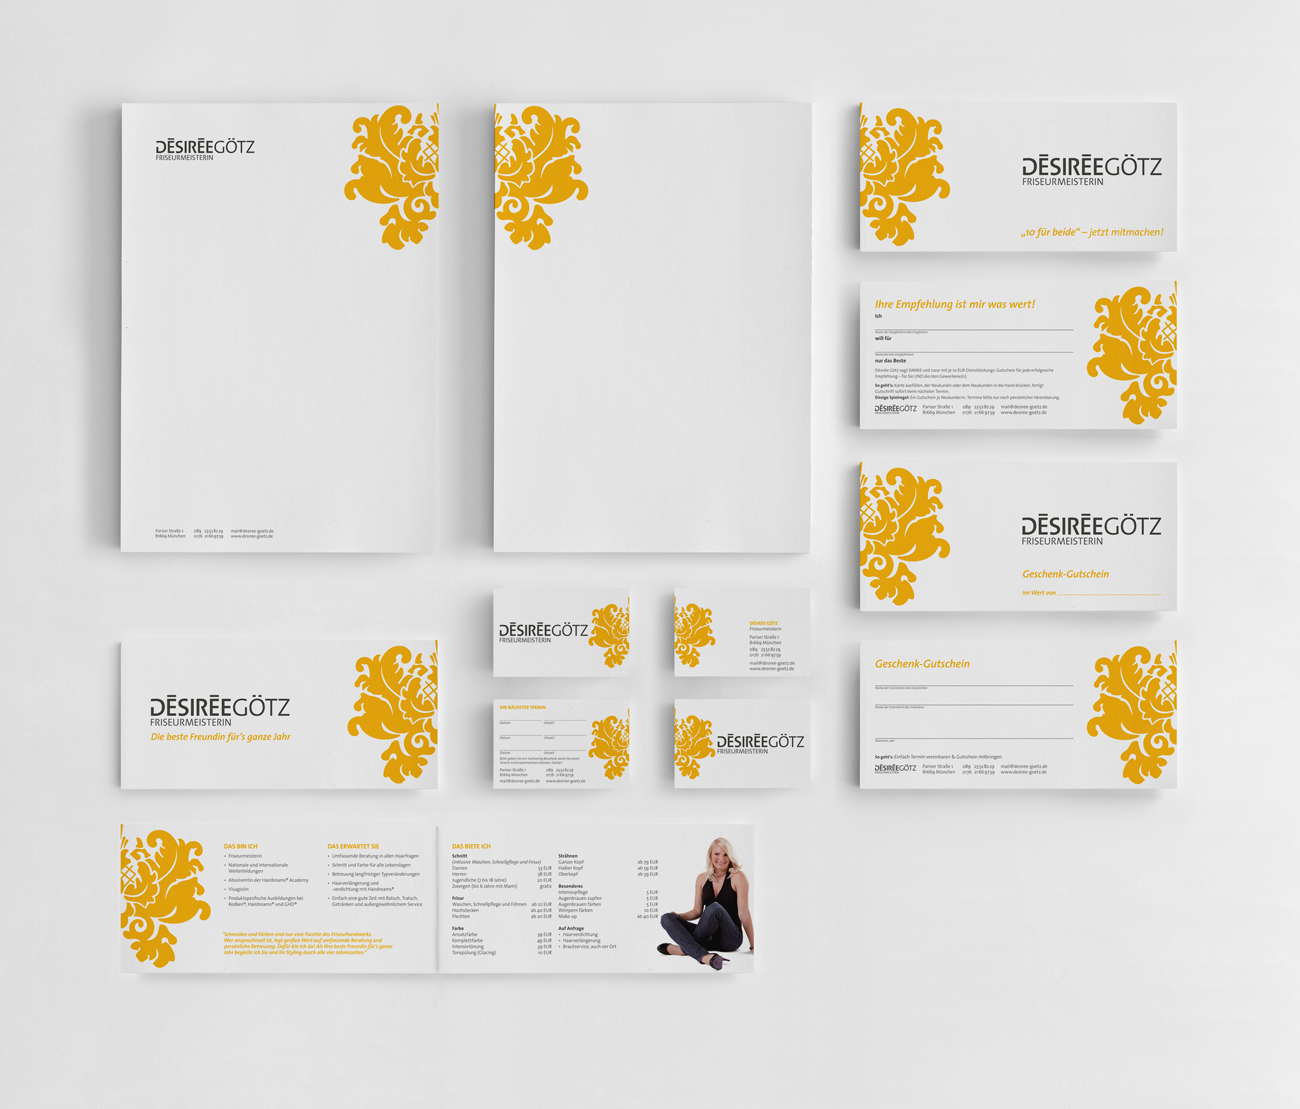 DesireeGoetz_CorporateDesign.jpg?fit=1300%2C1109